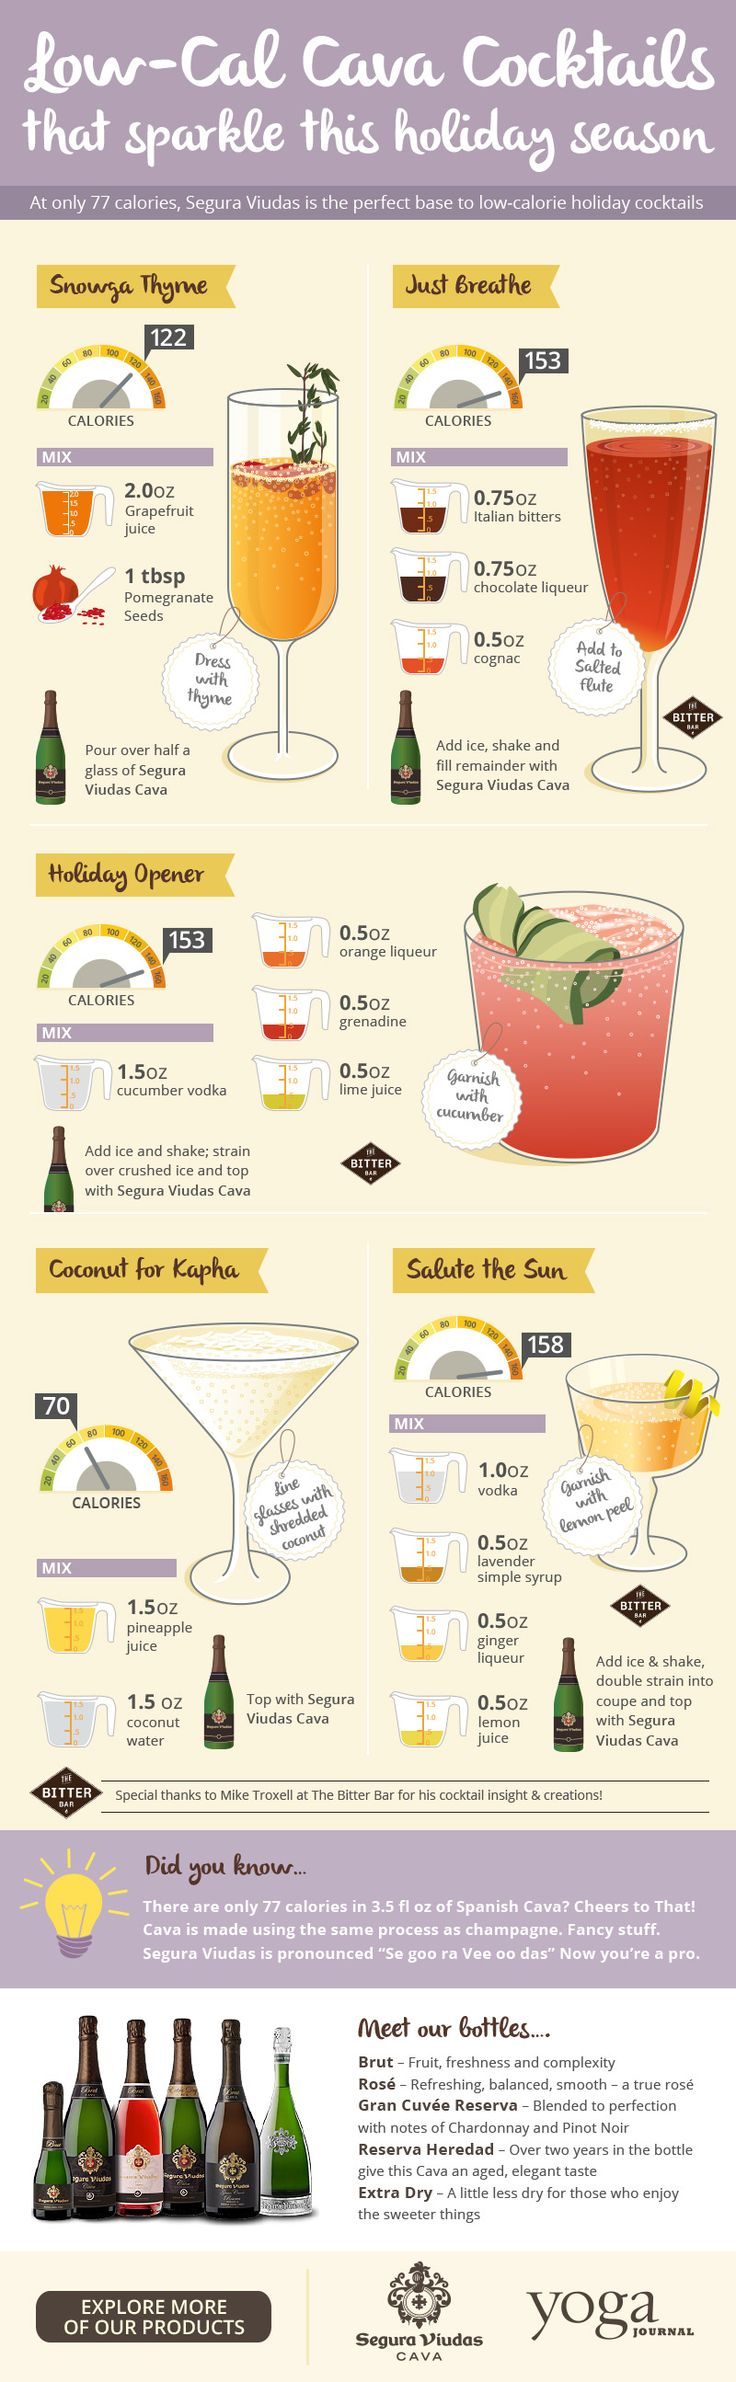 For the perfect holiday party sipper, try one of these yummy Cava cocktail recipes, presented by @Segura Viudas USA. #Tistheseason